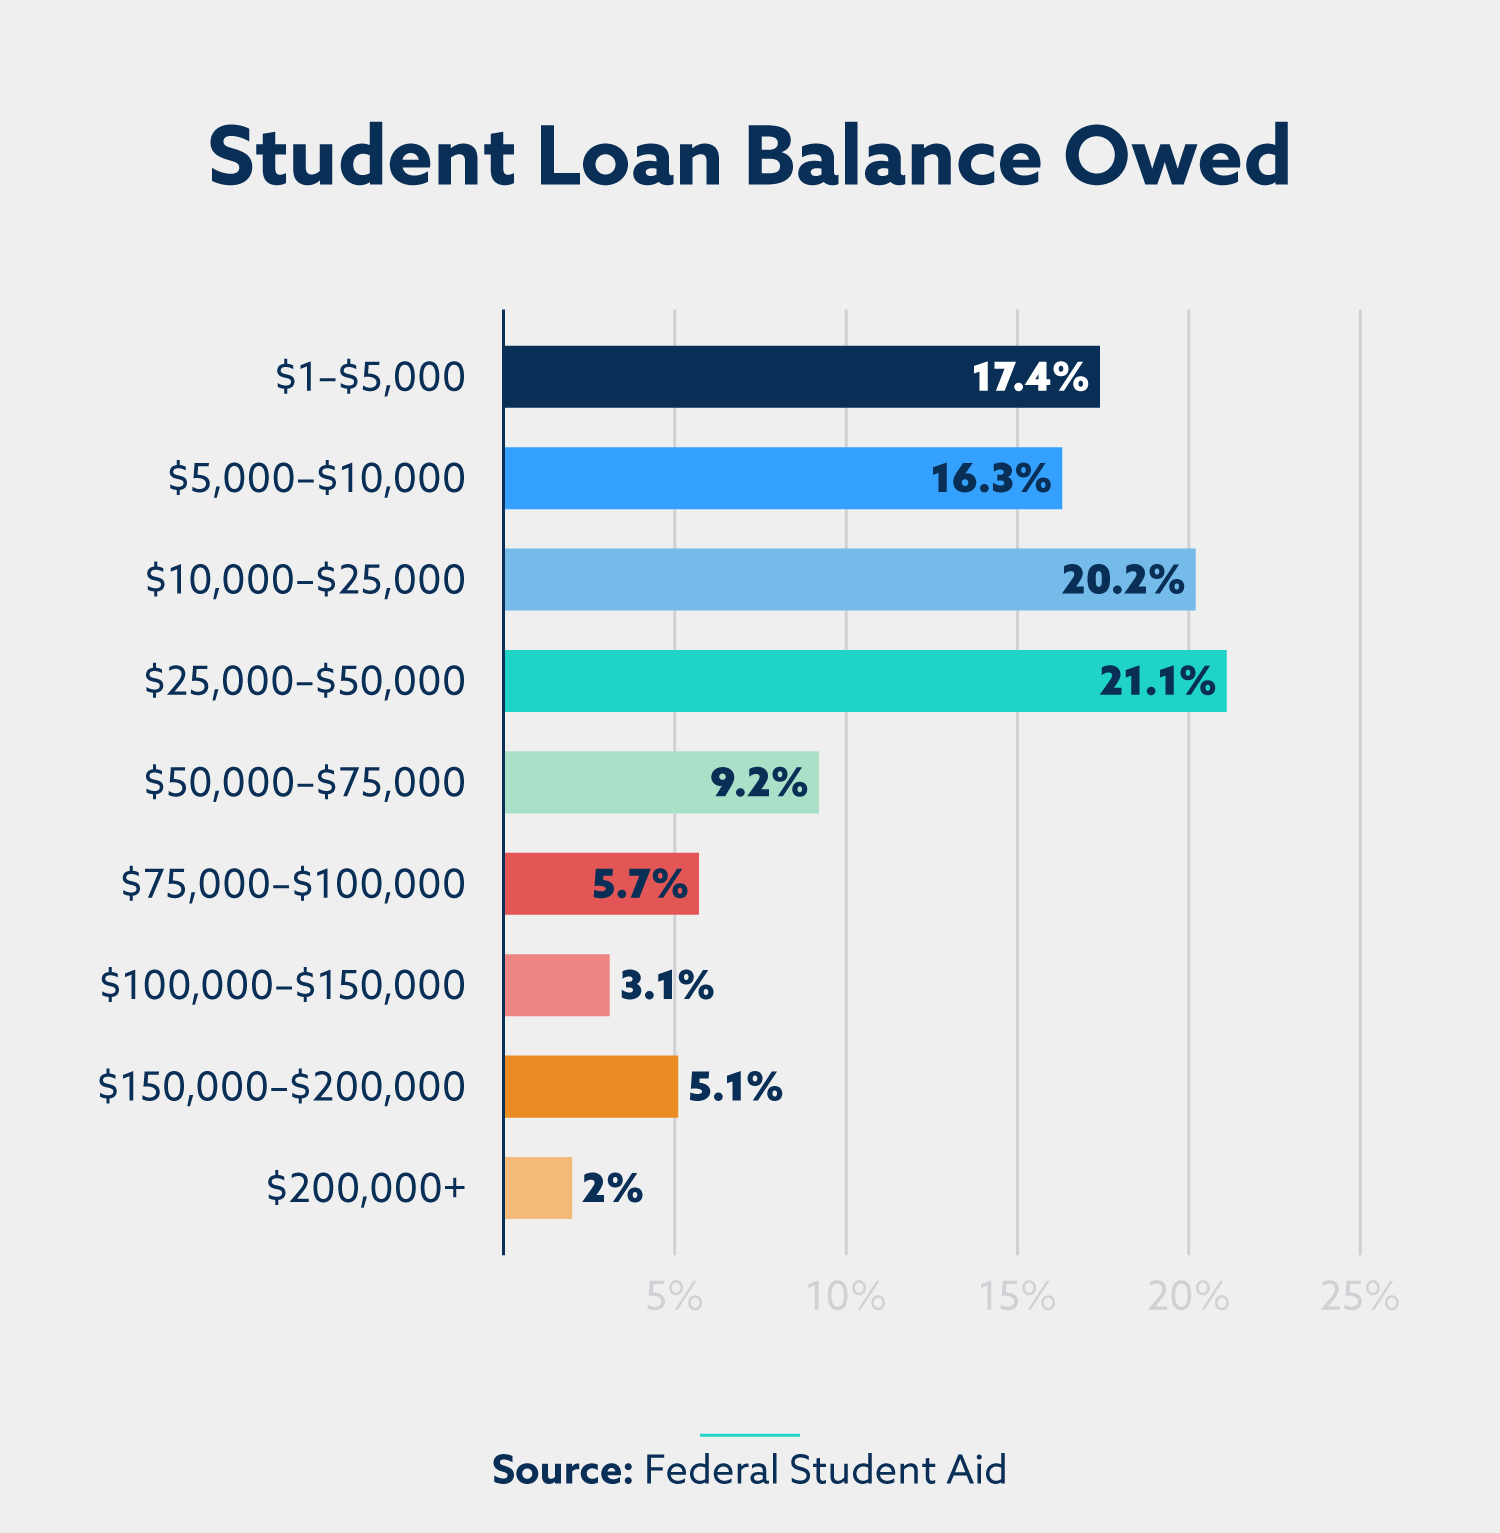 graph of total student loan balance owed